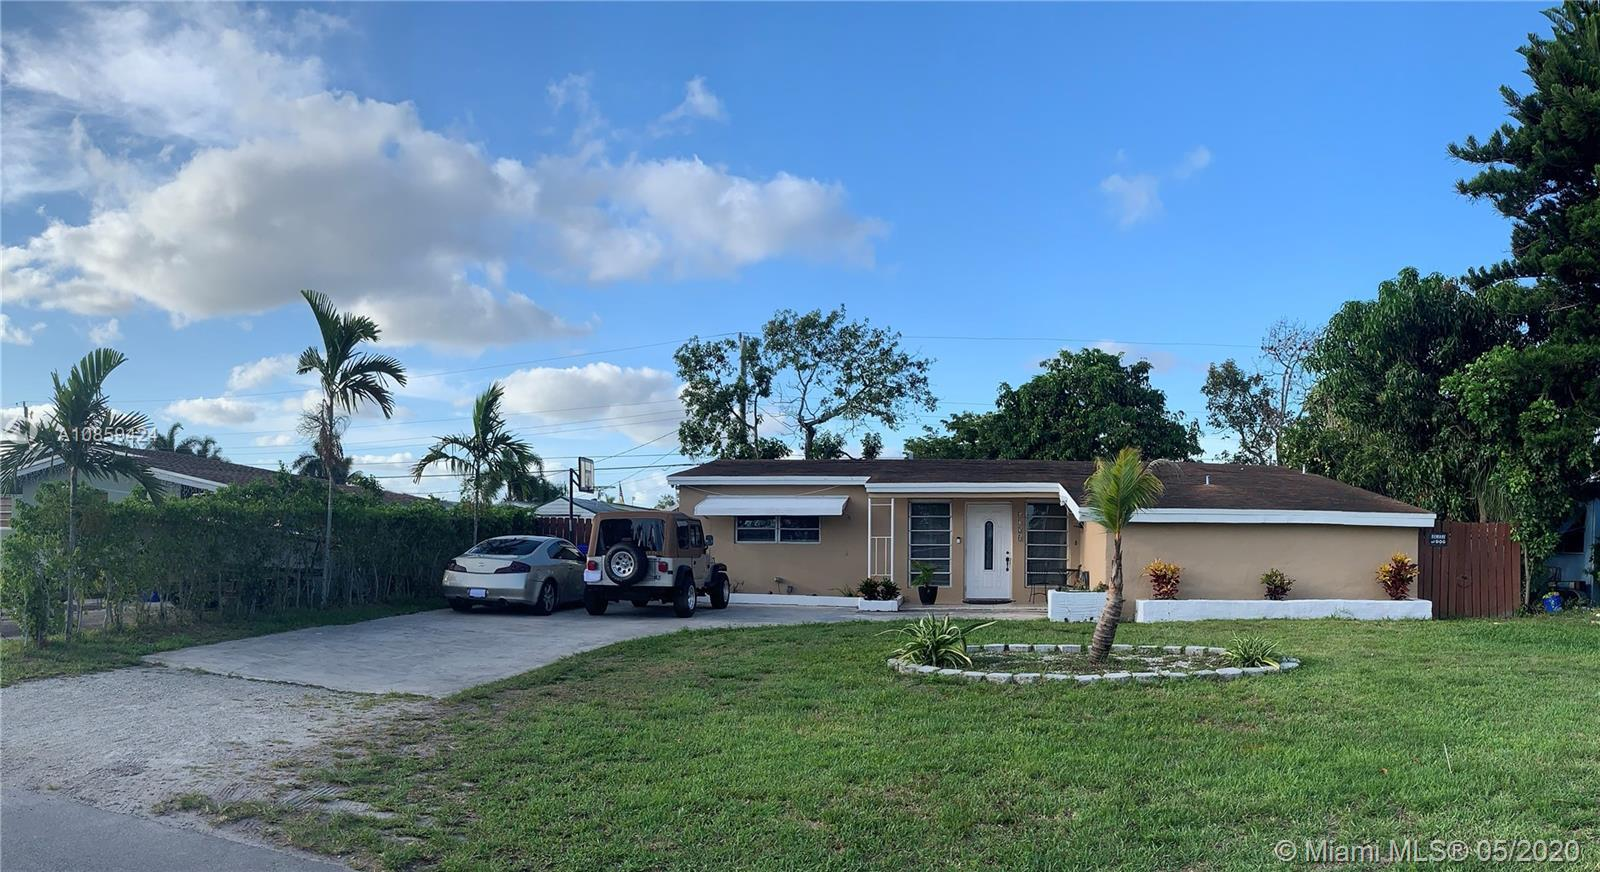 This Beautiful Home is a Hidden Gem that features Updated Kitchen, Tile Throughout, Large Storage Ro